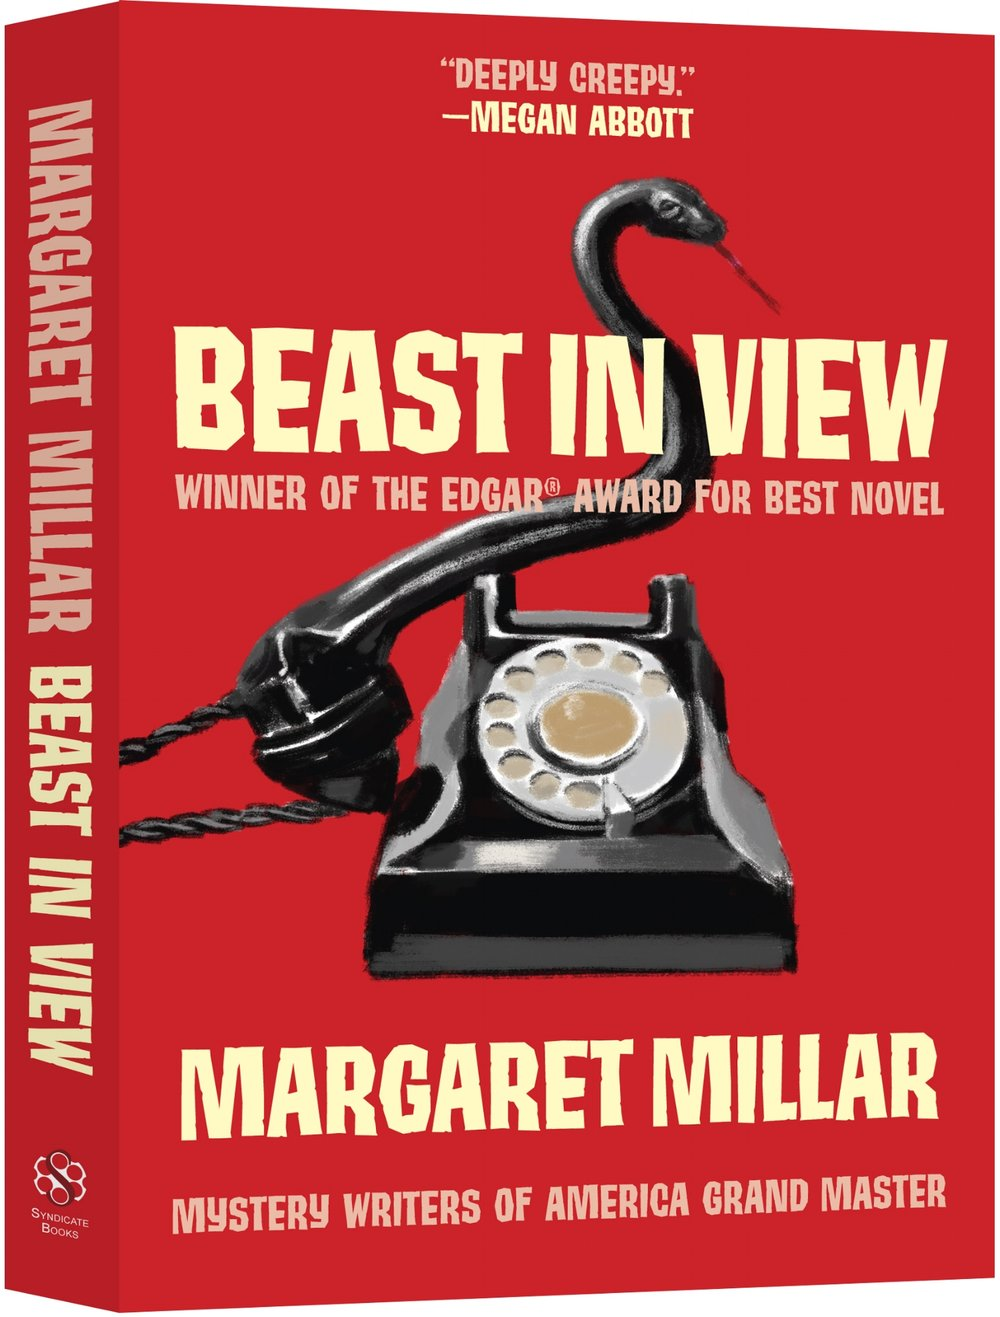 BEAST IN VIEW (Trade Paperback)